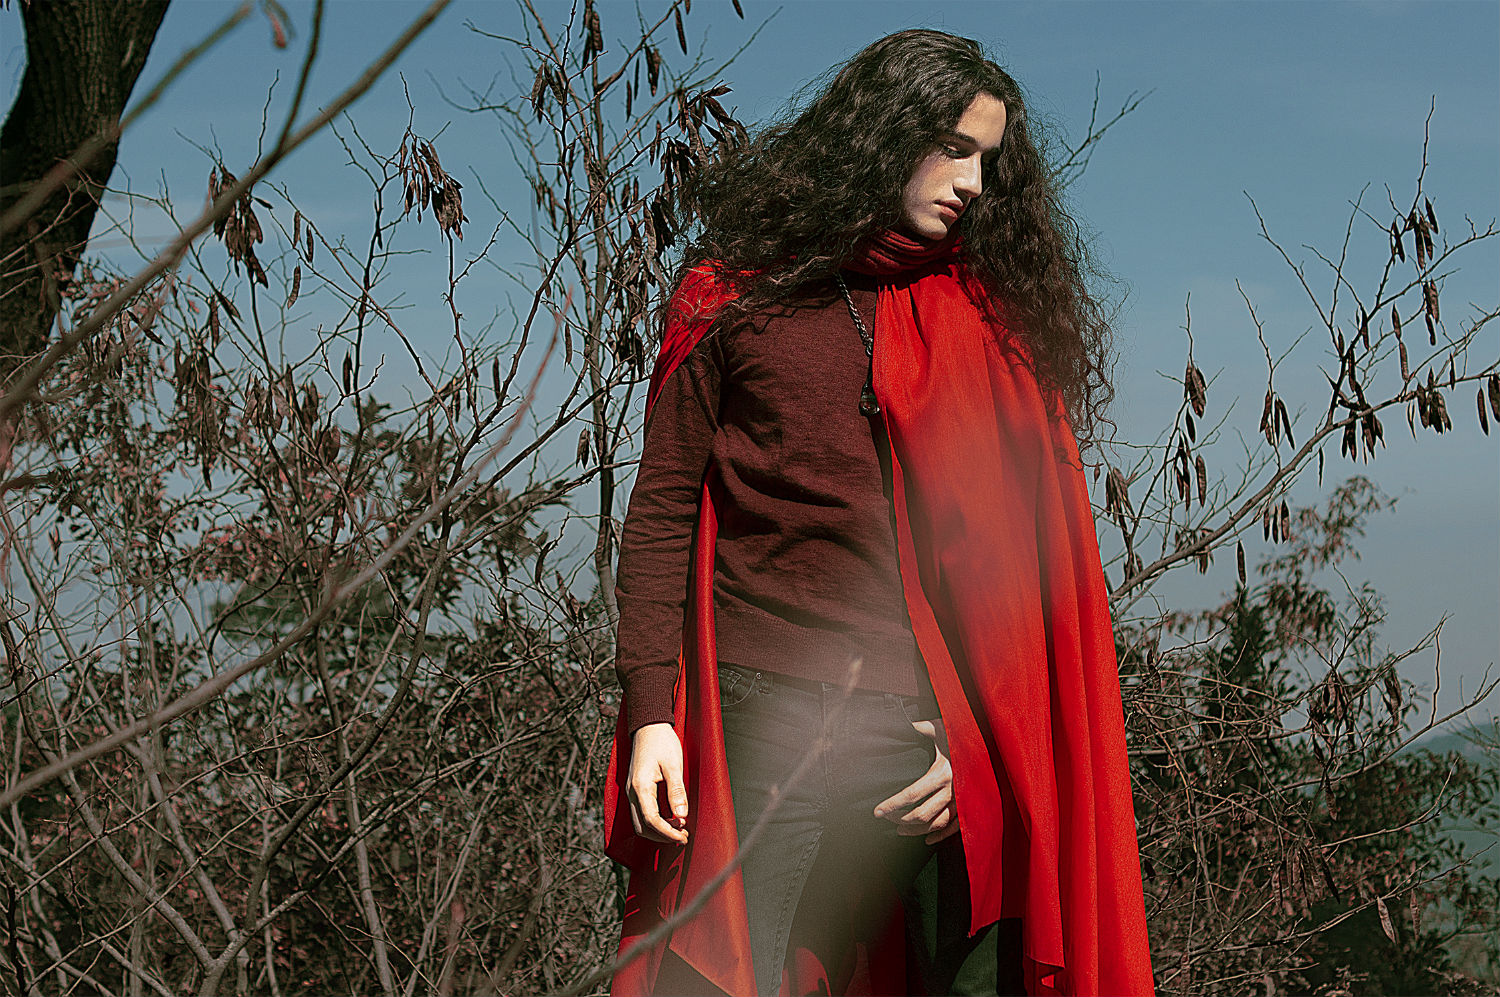 jvdas berra fashion photography halloween gothic red riding hood